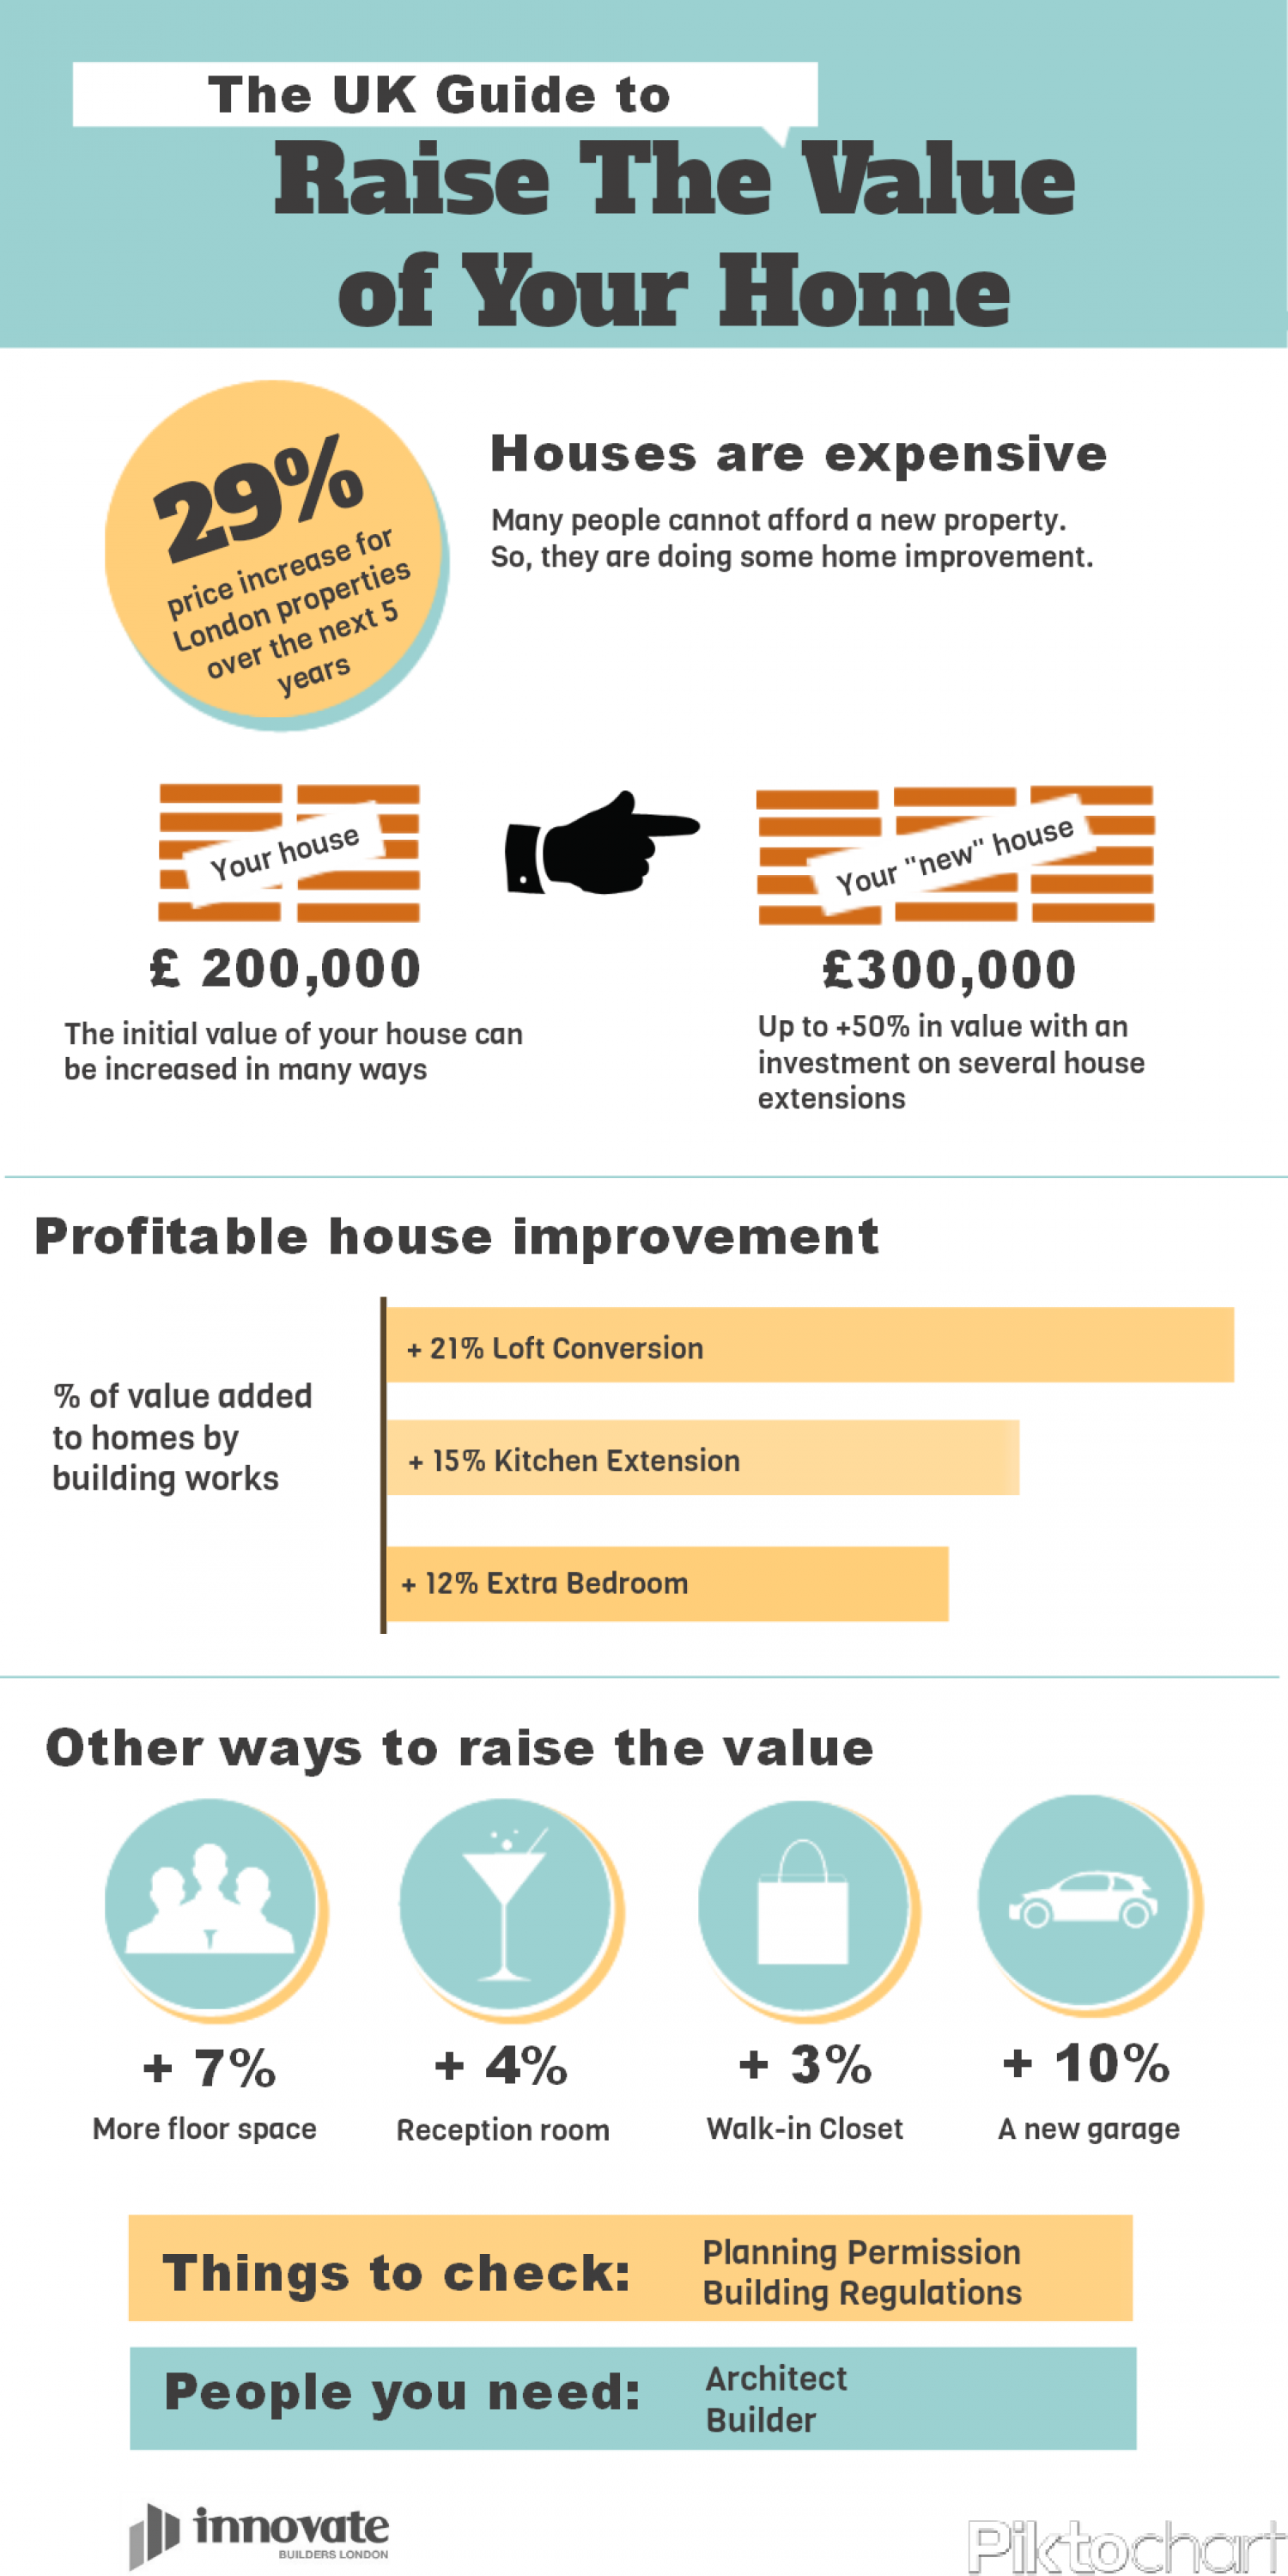 The UK Guide to Raise The Value of Your Home Infographic